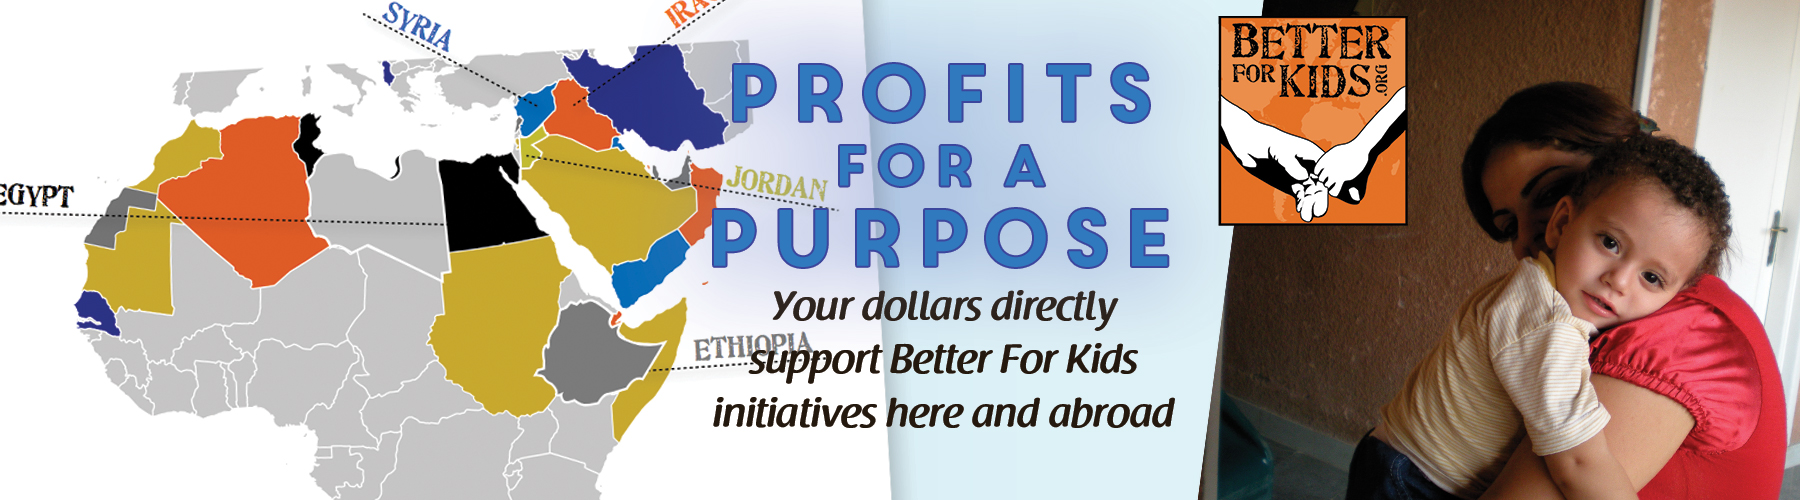 Profits-for-Purpose